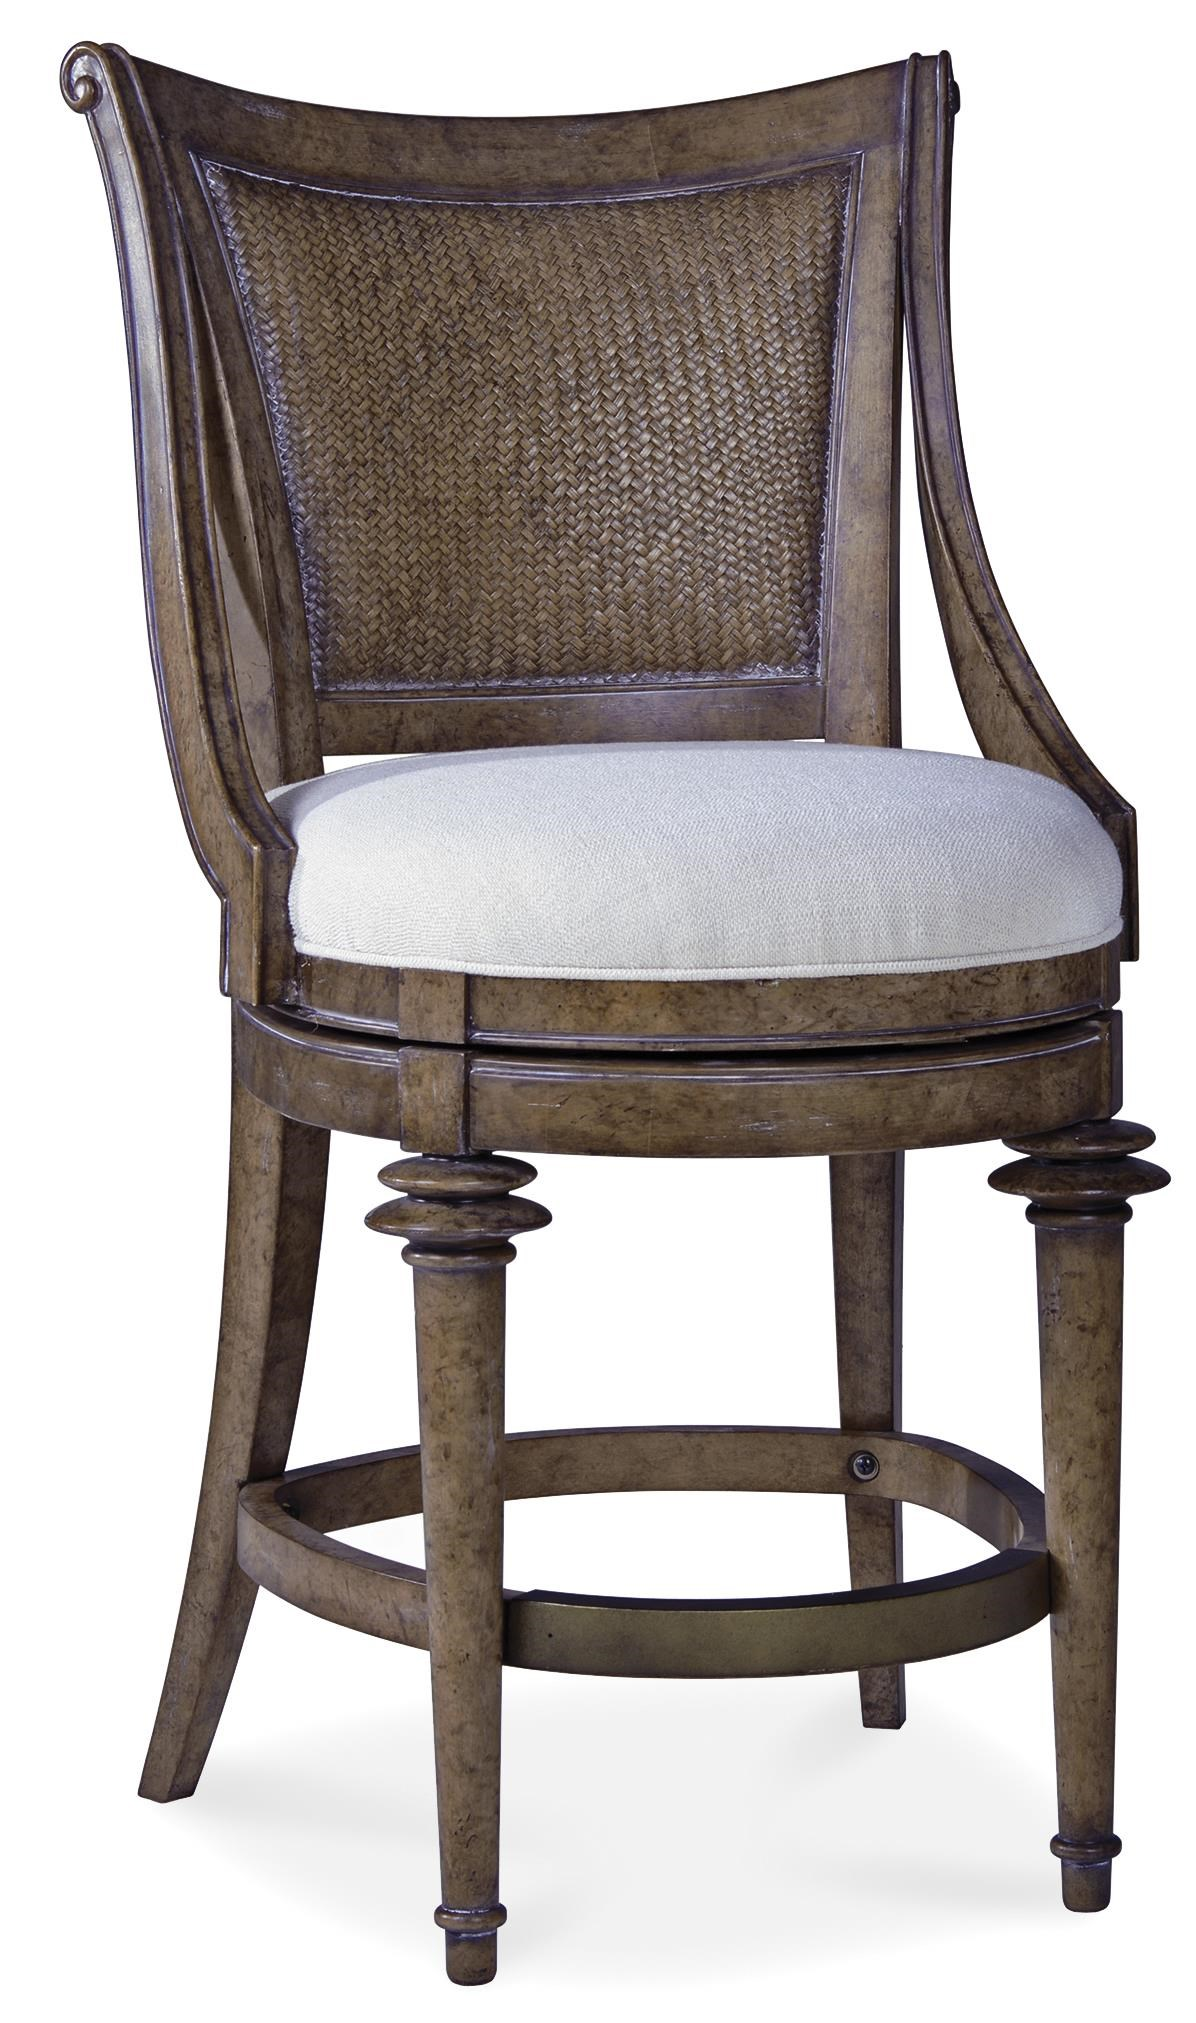 A.R.T. Furniture Inc Pavilion 229209-2608 Woven-Back High Dining Chair : Baeru0026#39;s Furniture : Bar ...